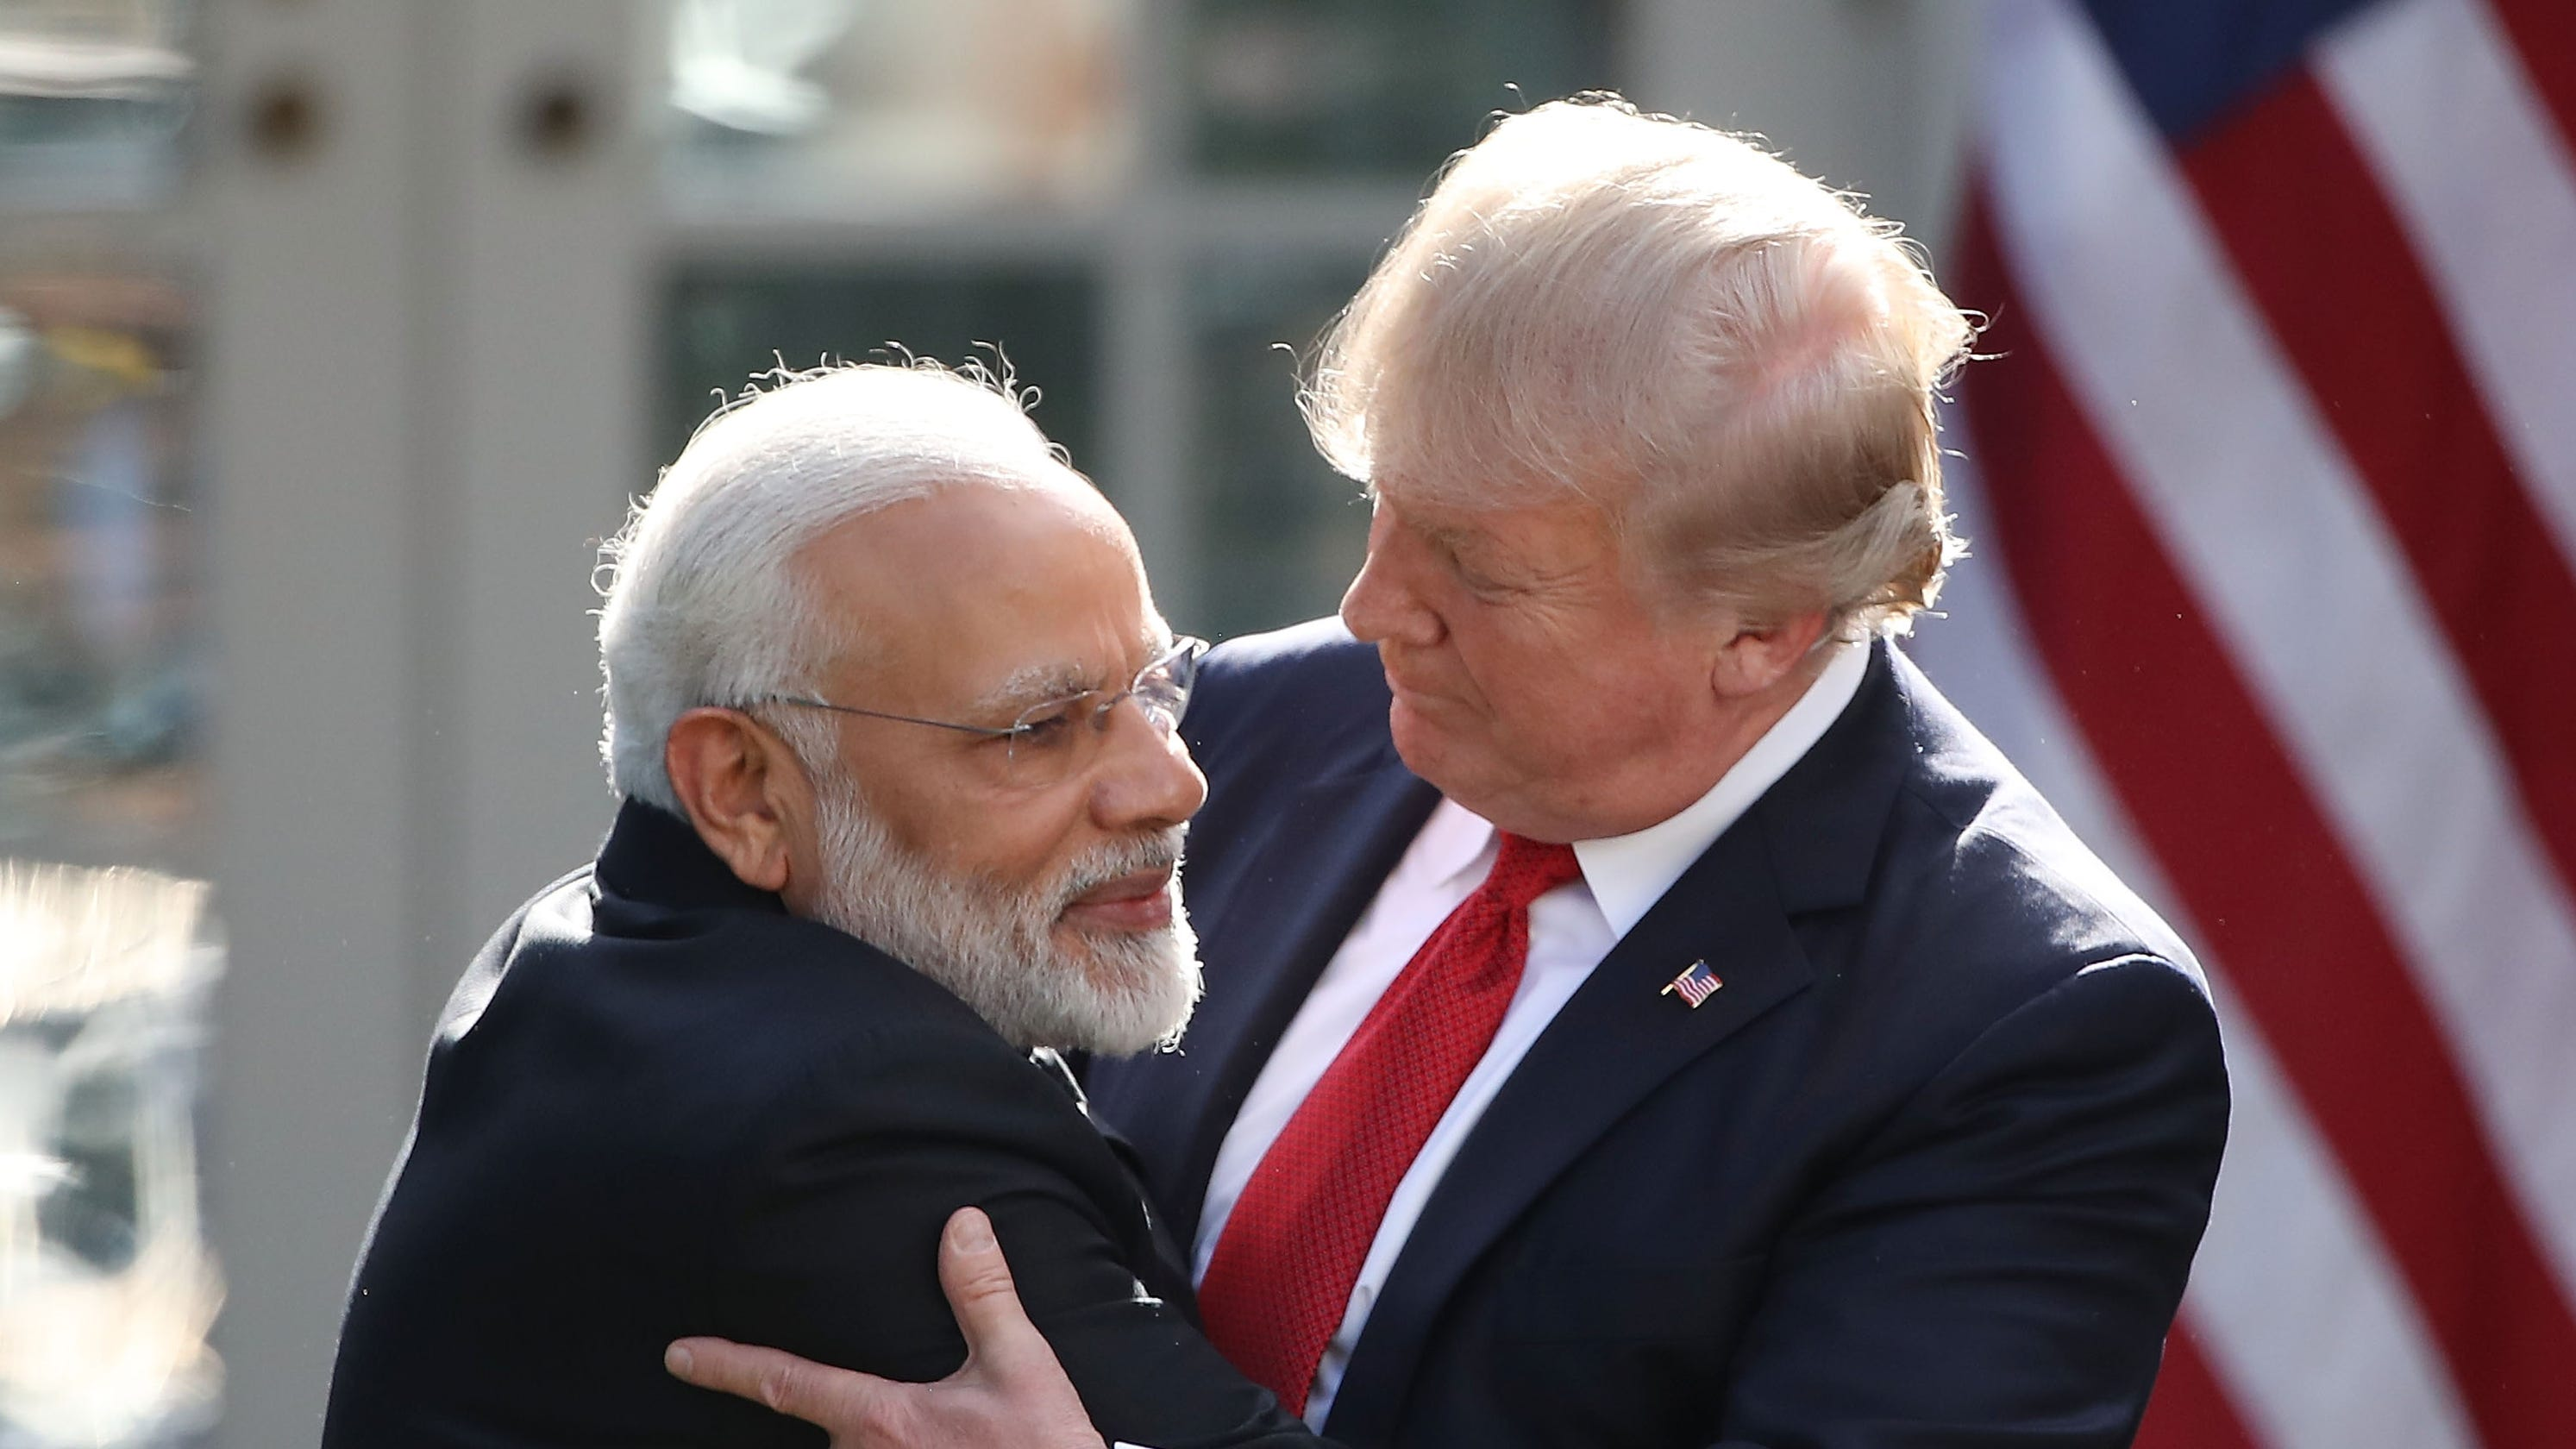 The Trump-Modi bromance: What sparked it and what do each of them stand to gain?